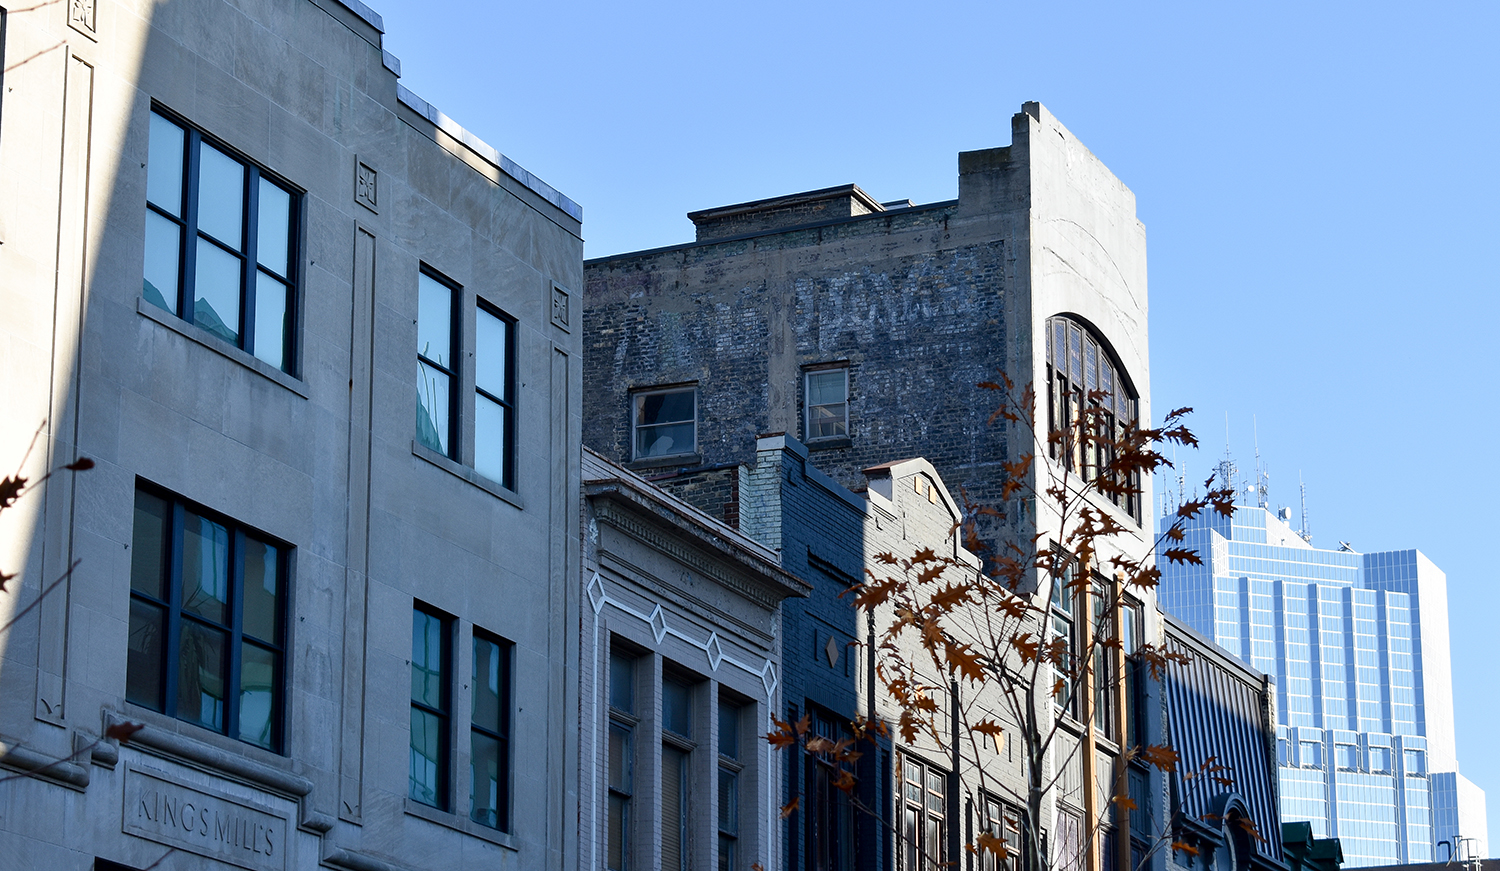 A faded ghost is stands out in a row of buildings